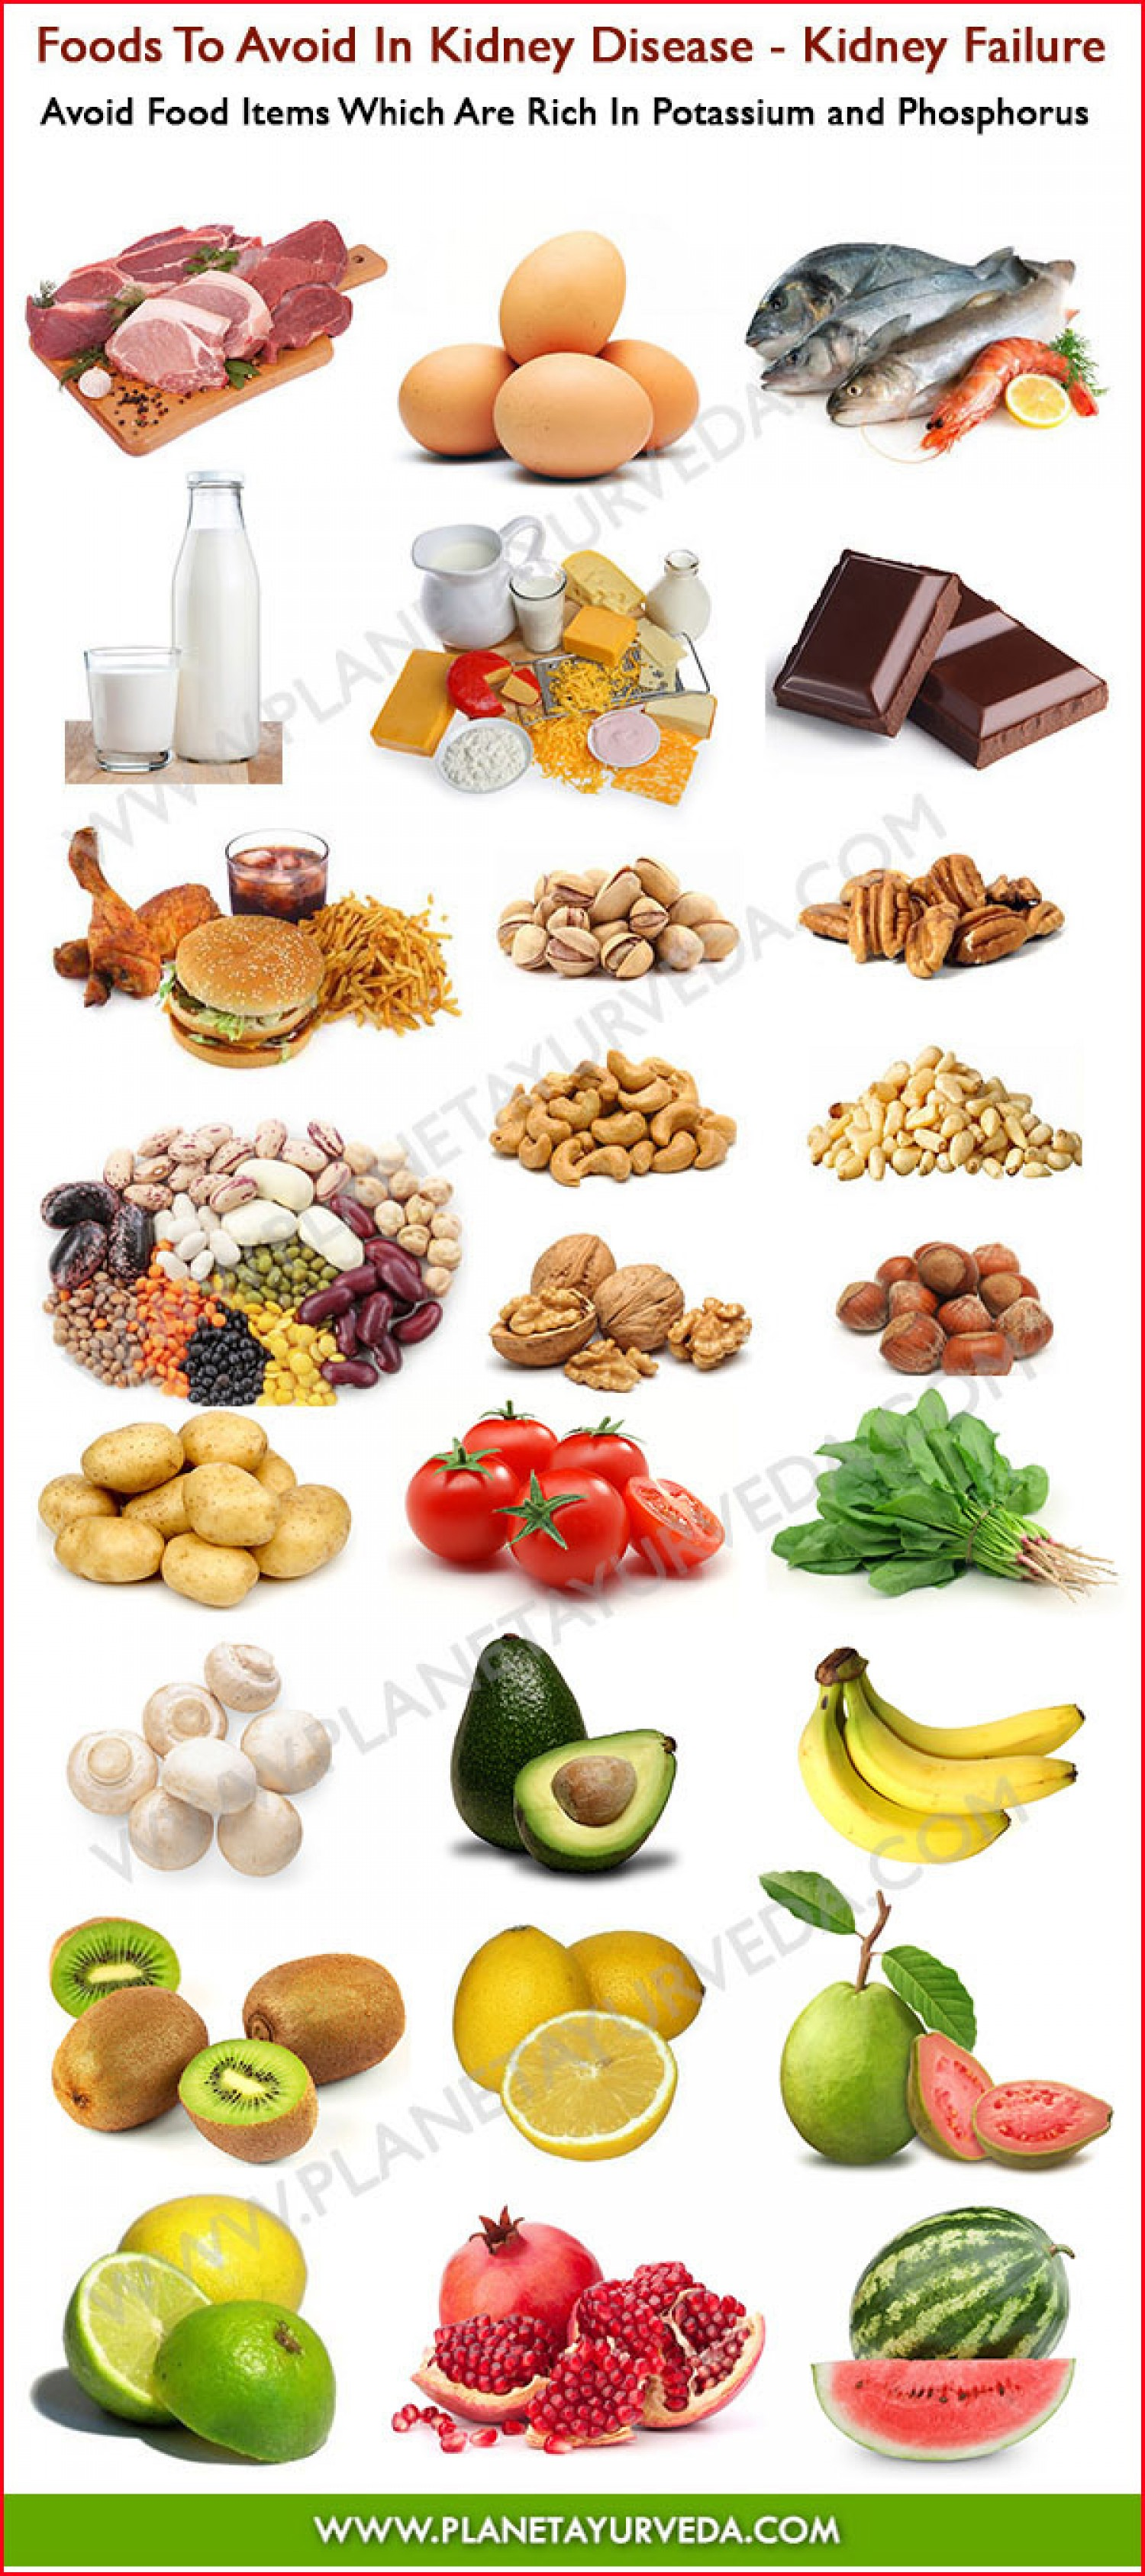 Foods To Avoid In Kidney Disease Infographic Everyone Should Aware Off